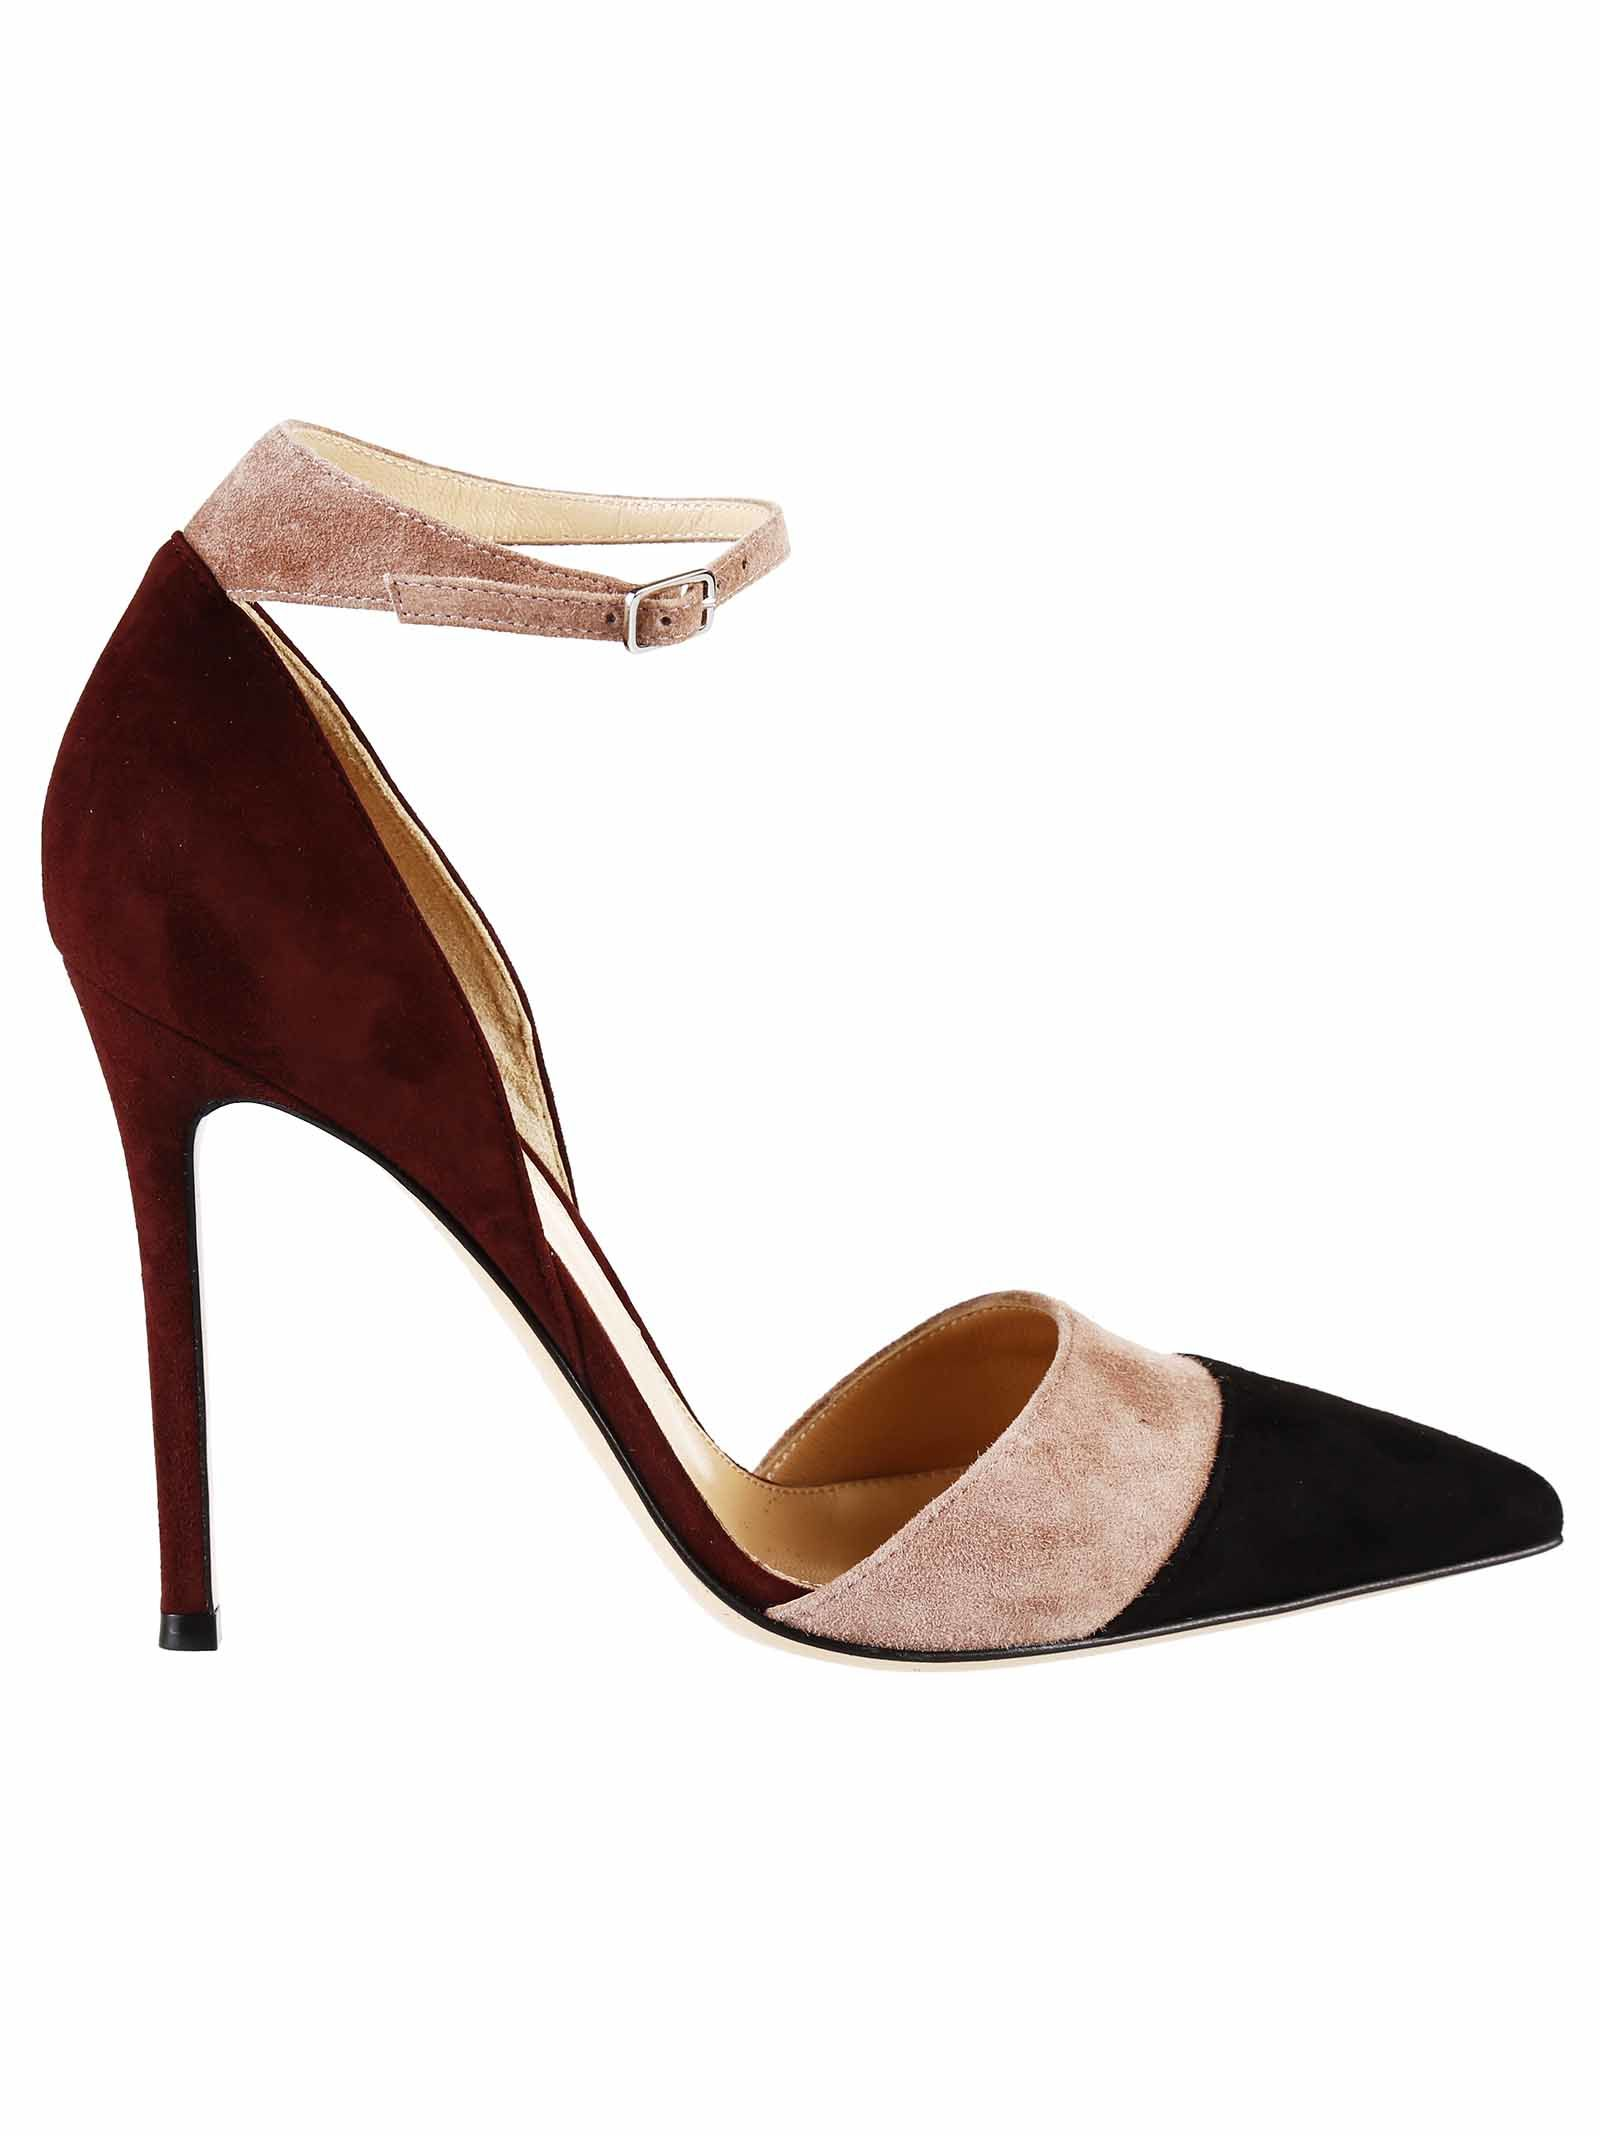 Gianvito Rossi pointed buckle pumps clearance looking for find great sale online J4KJF2H